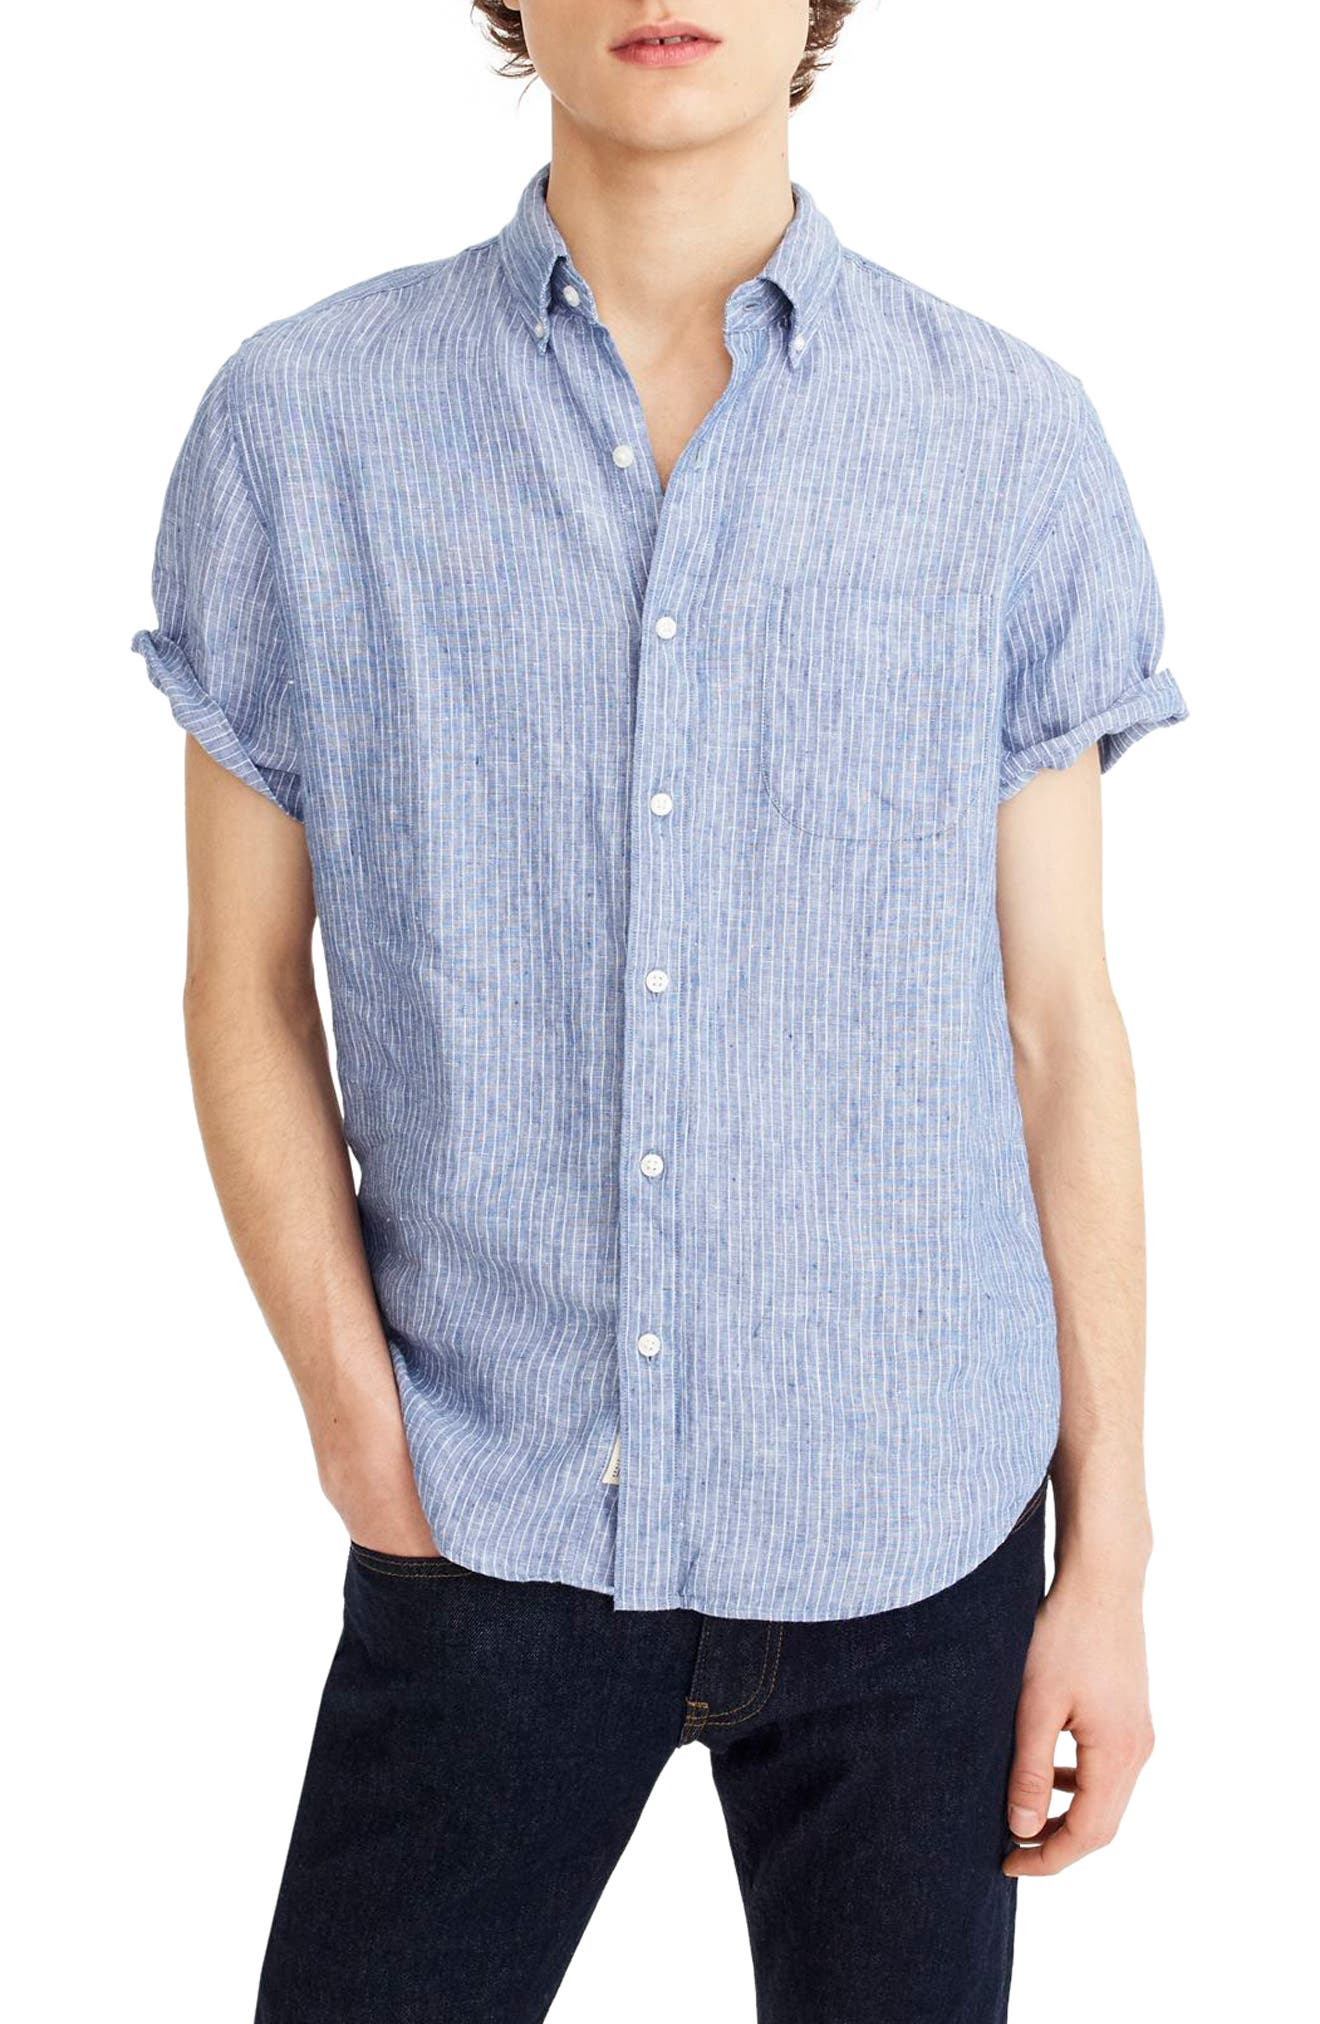 Stripe Short Sleeve Linen Shirt,                             Main thumbnail 1, color,                             400